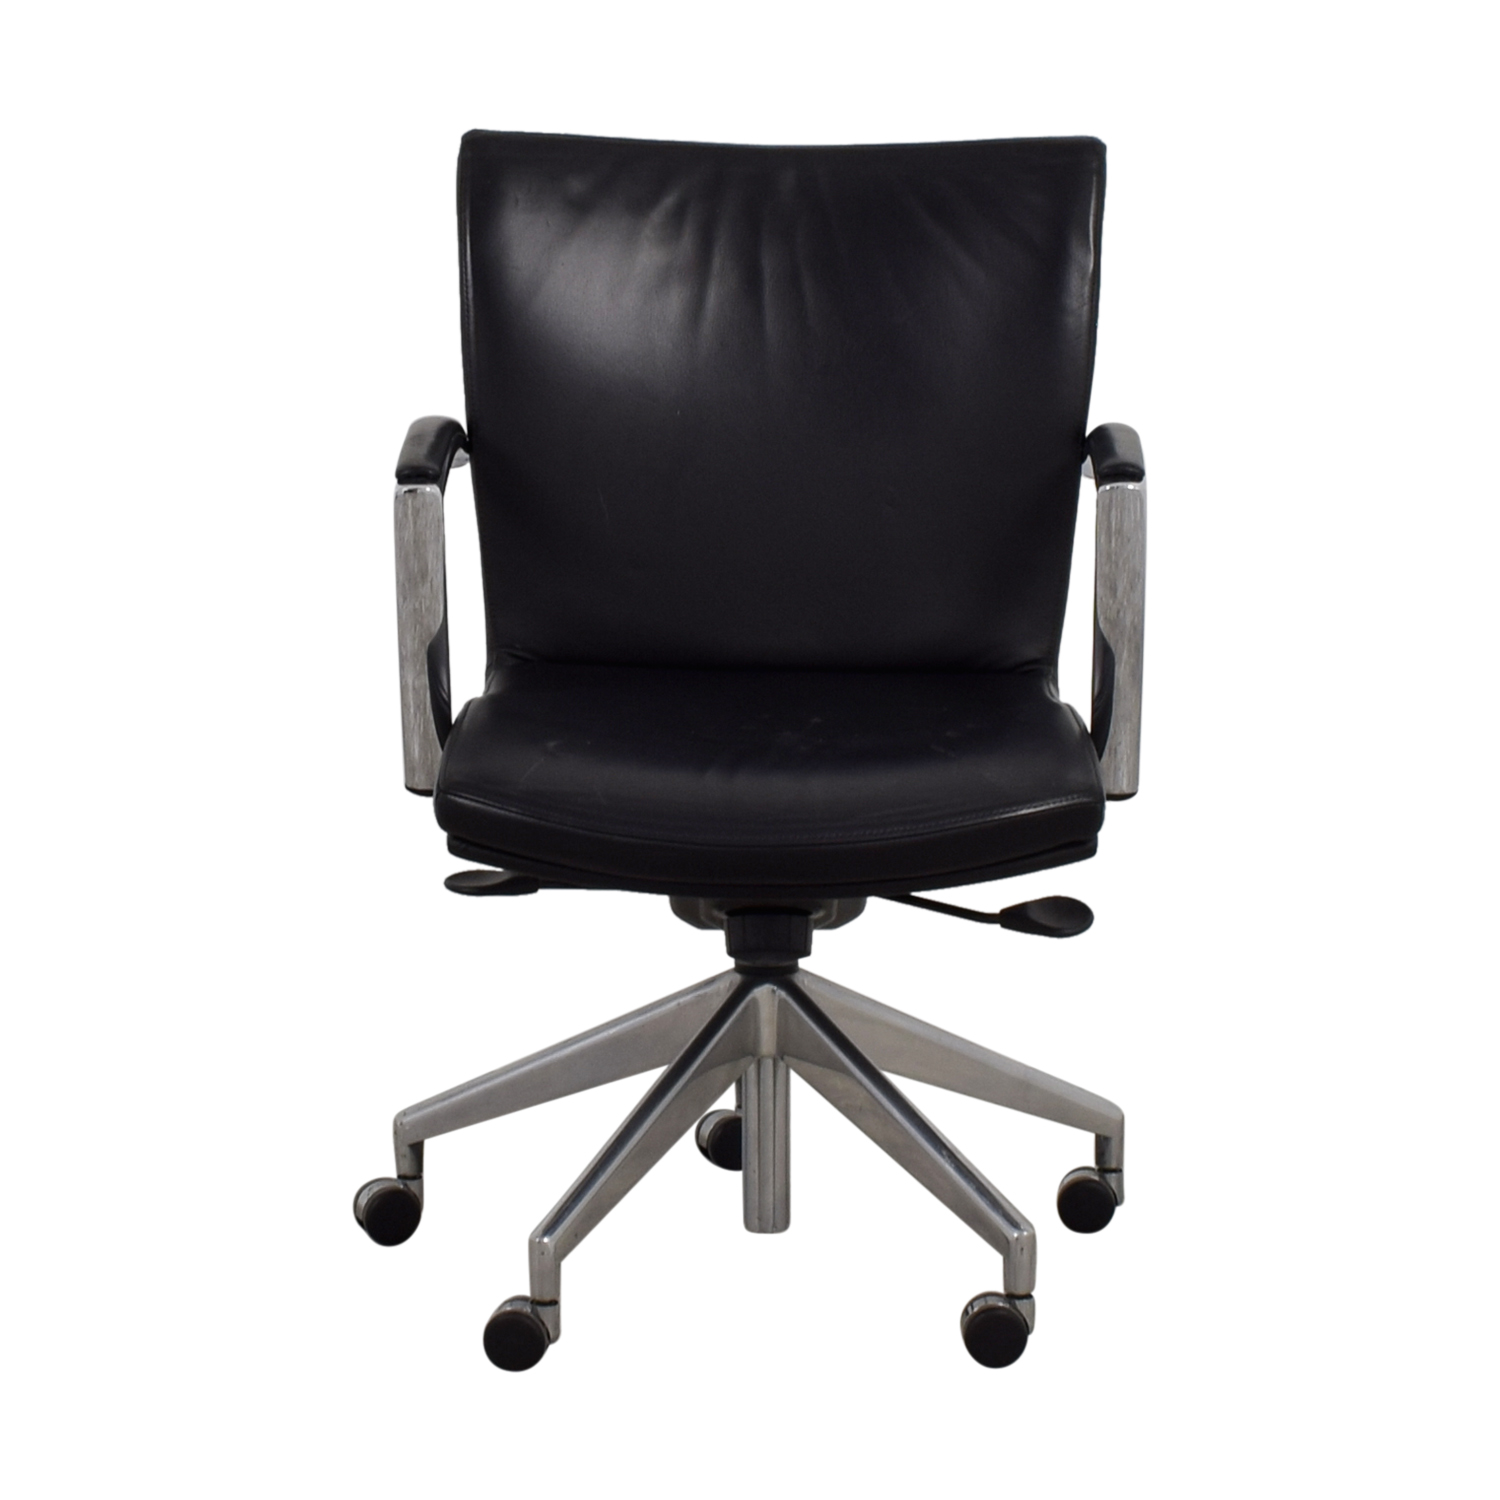 Shop Black Leather Desk Chair ...